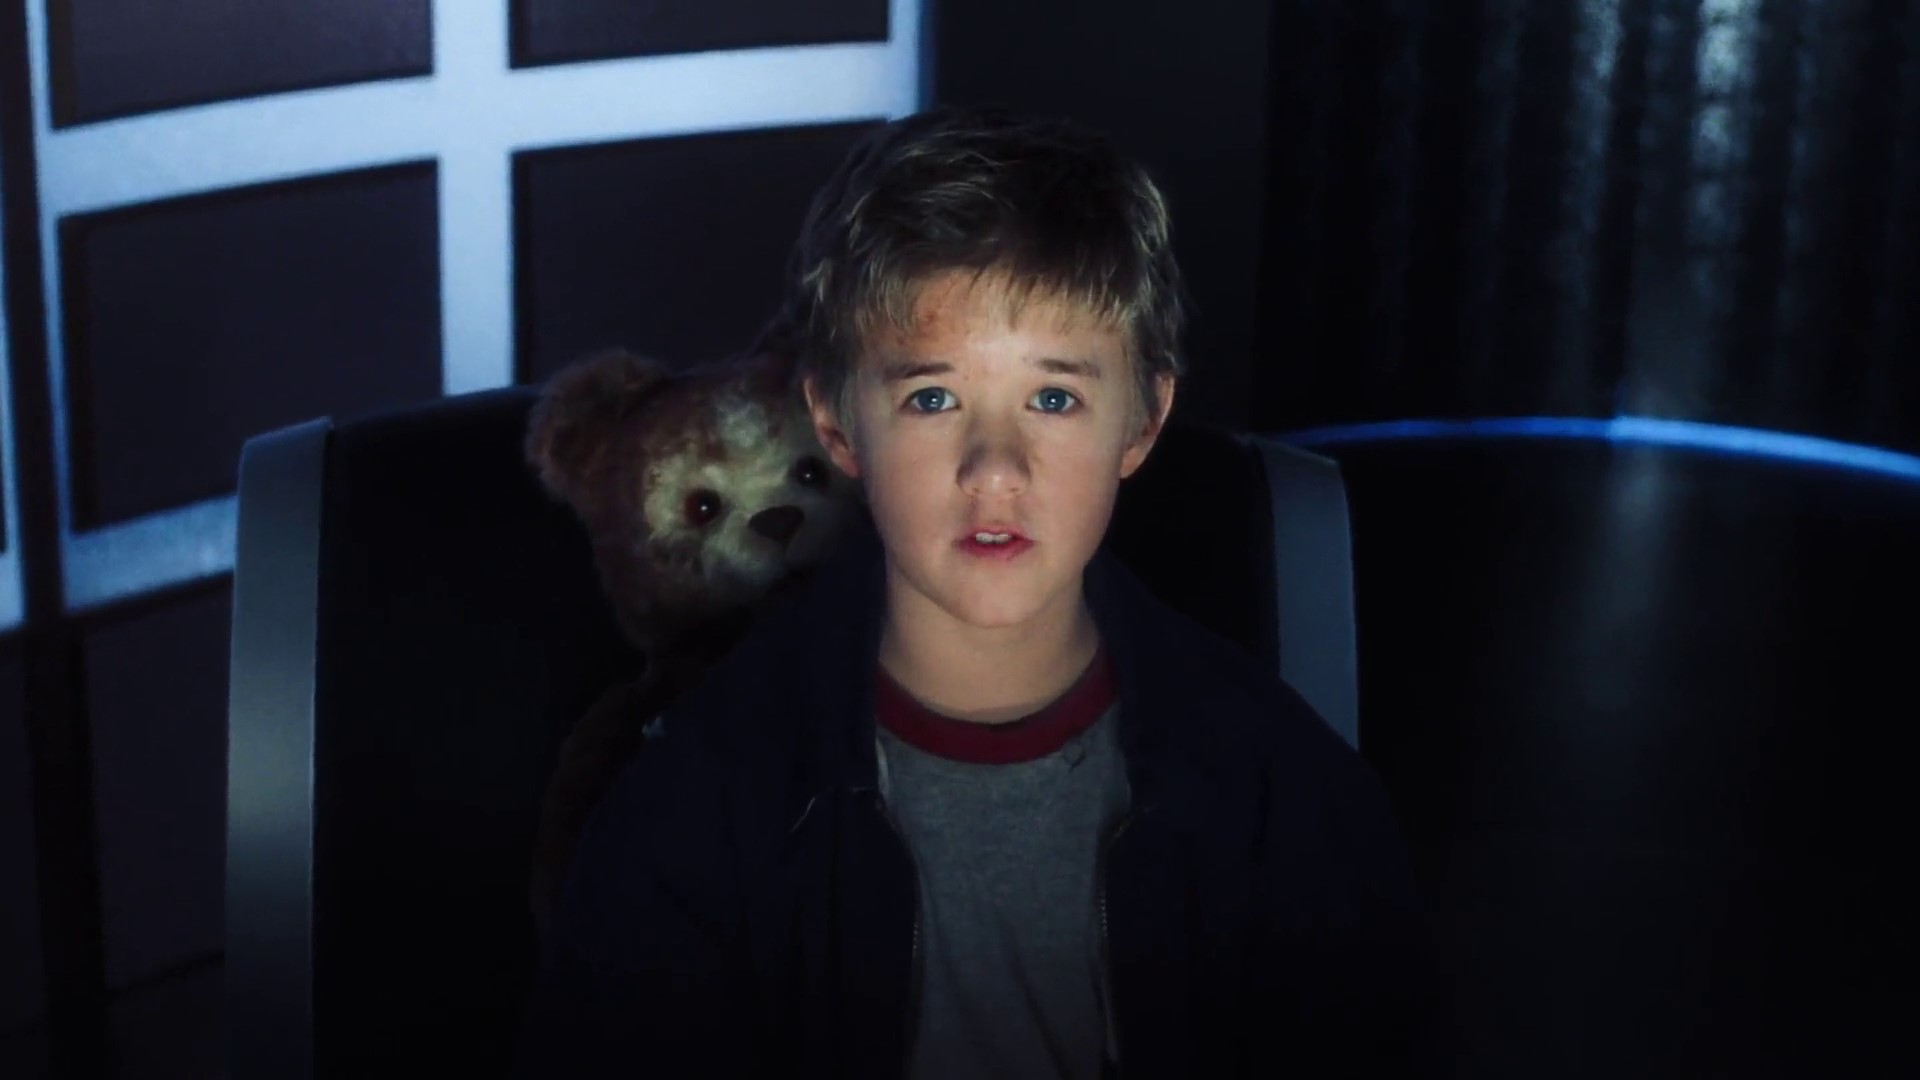 David (Haley Joel Osment) and Teddy in A.I.  (Artificial Intelligence (2001)